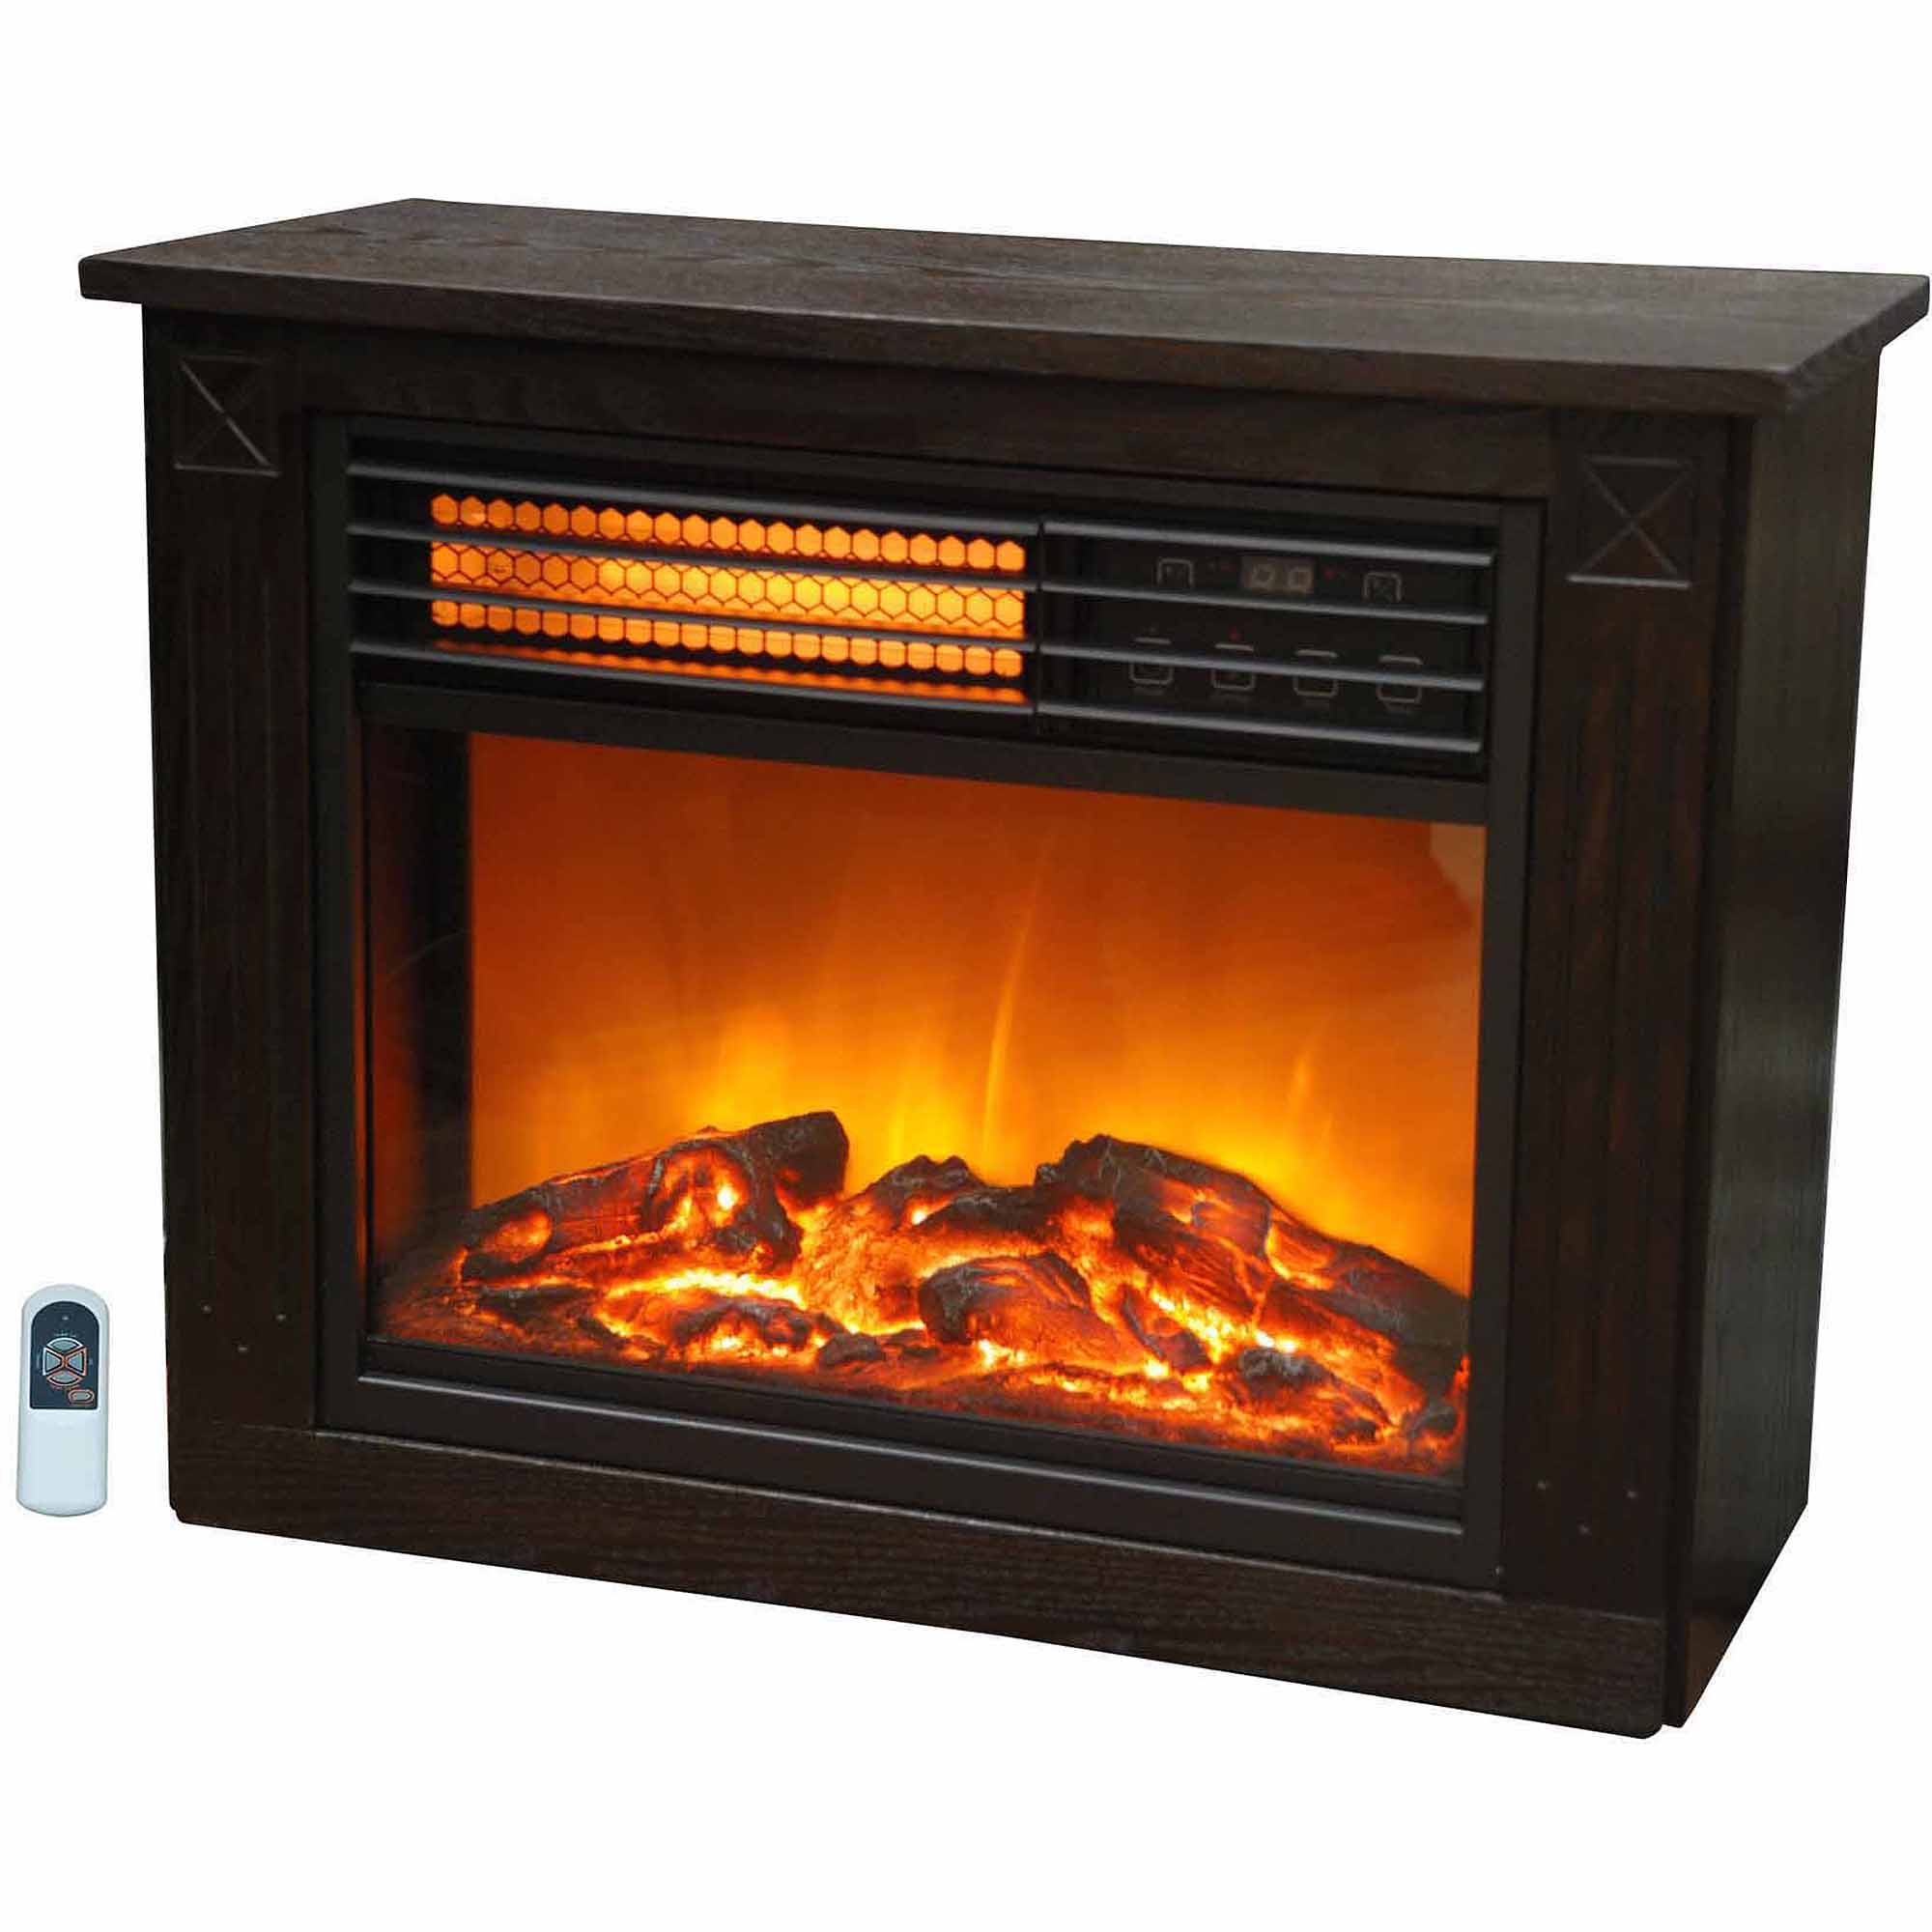 Lifezone Compact Infrared Electric Space Heater Fireplace